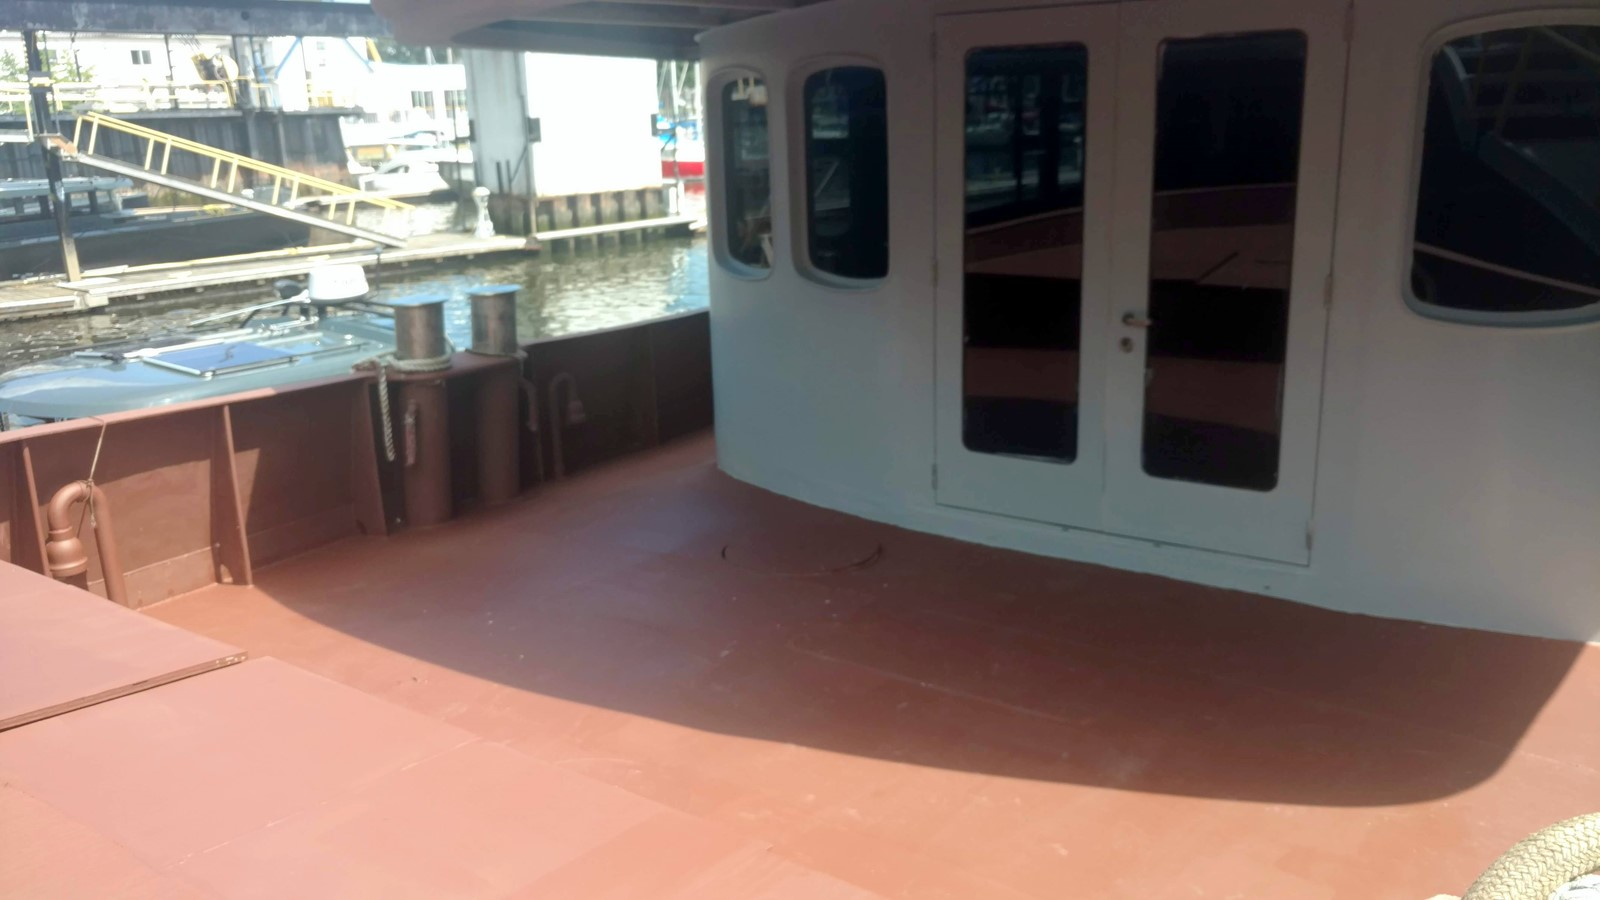 2018 GULFPORT SHIPBUILDING CORP Tug Boat Commercial Vessel 2310950